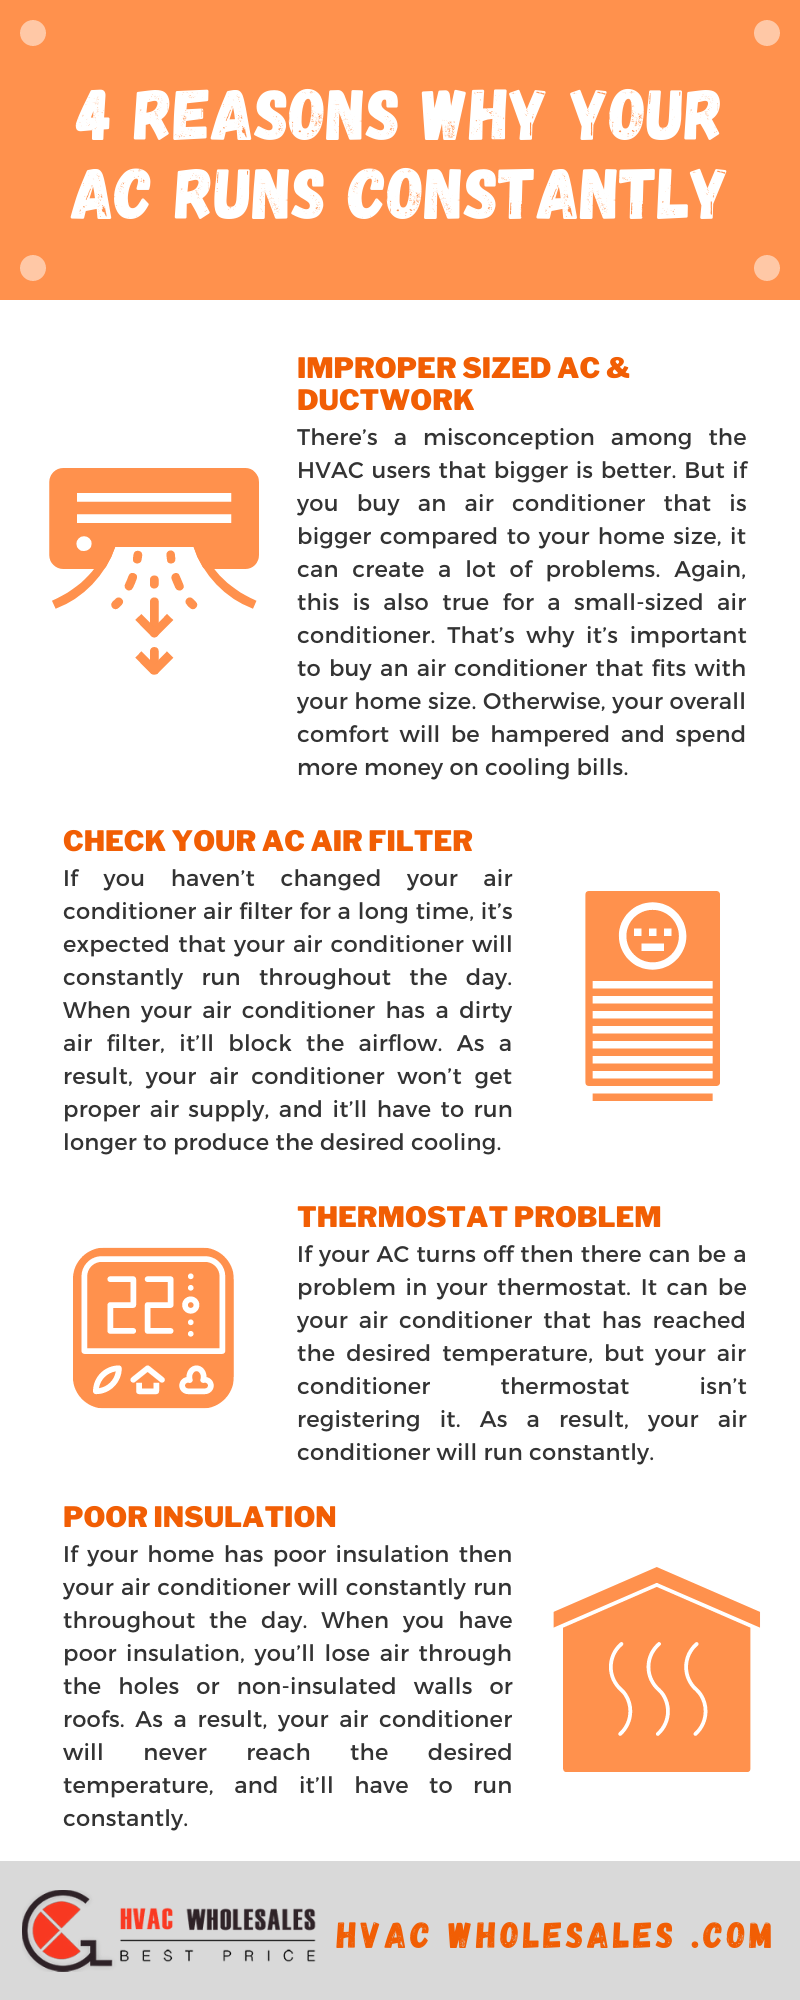 4 Reasons Why Your AC Runs Constantly